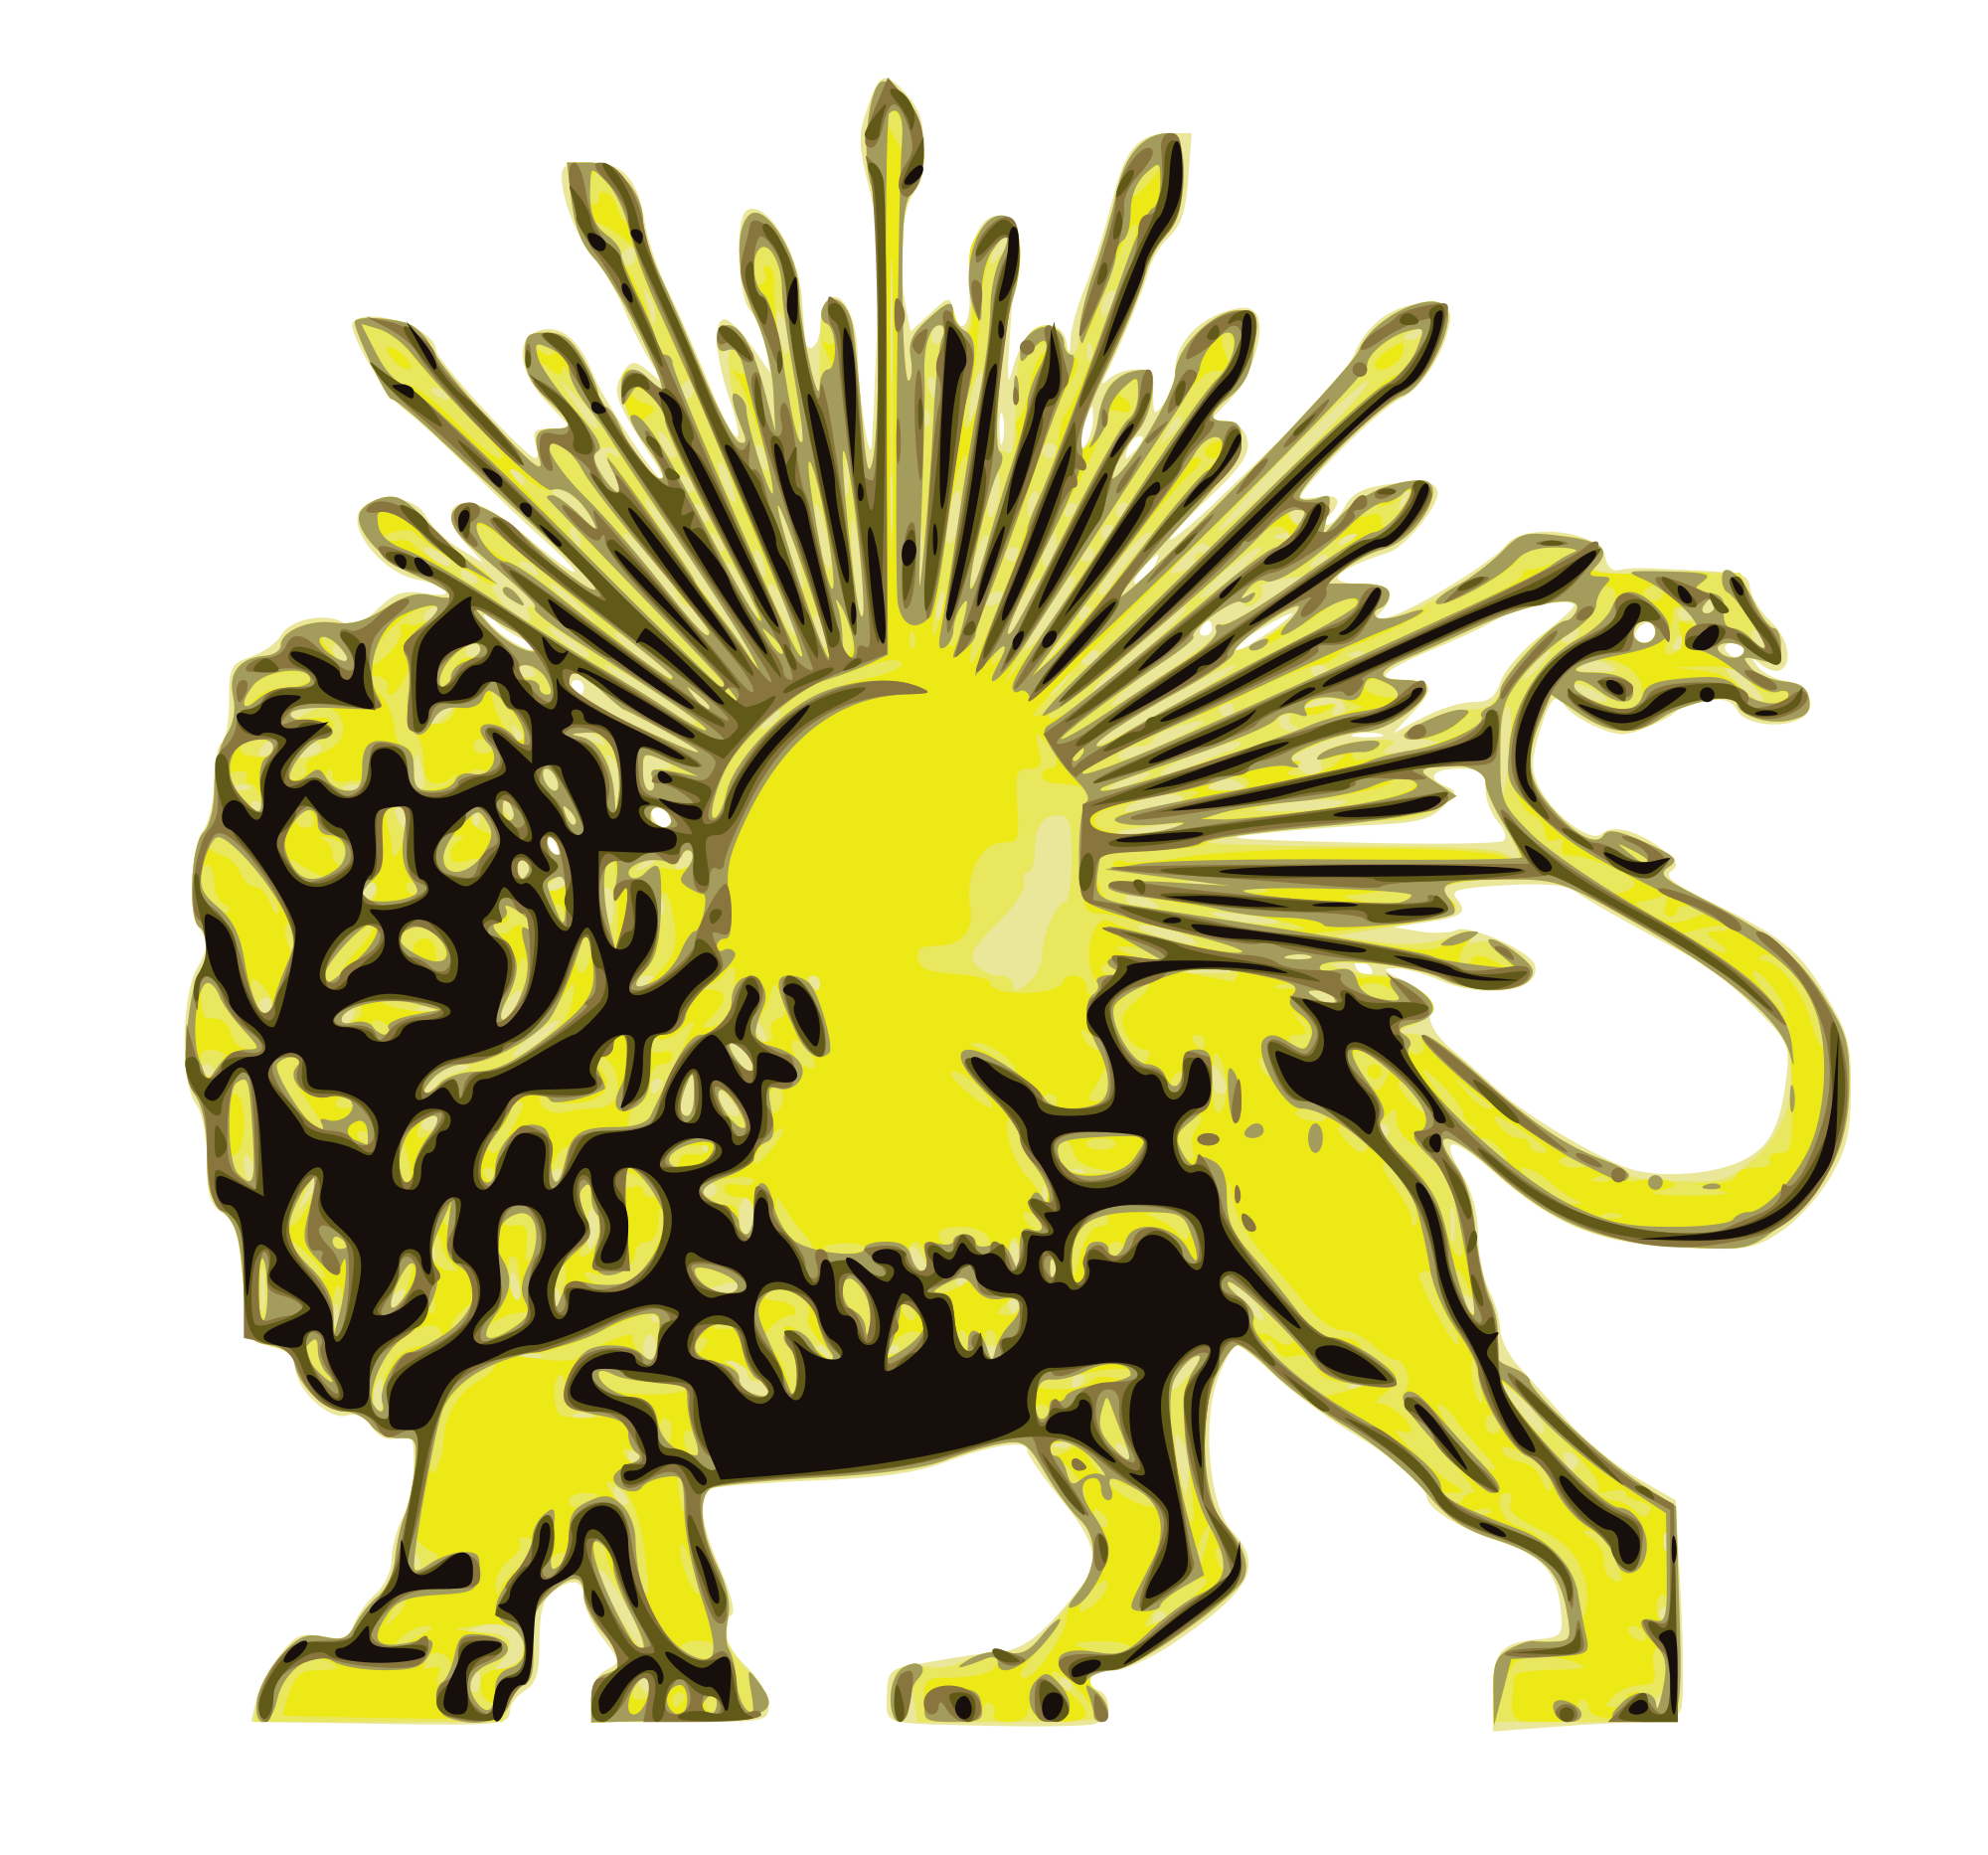 File:Lion and Sun drawing.svg - Wikimedia Commons svg freeuse download